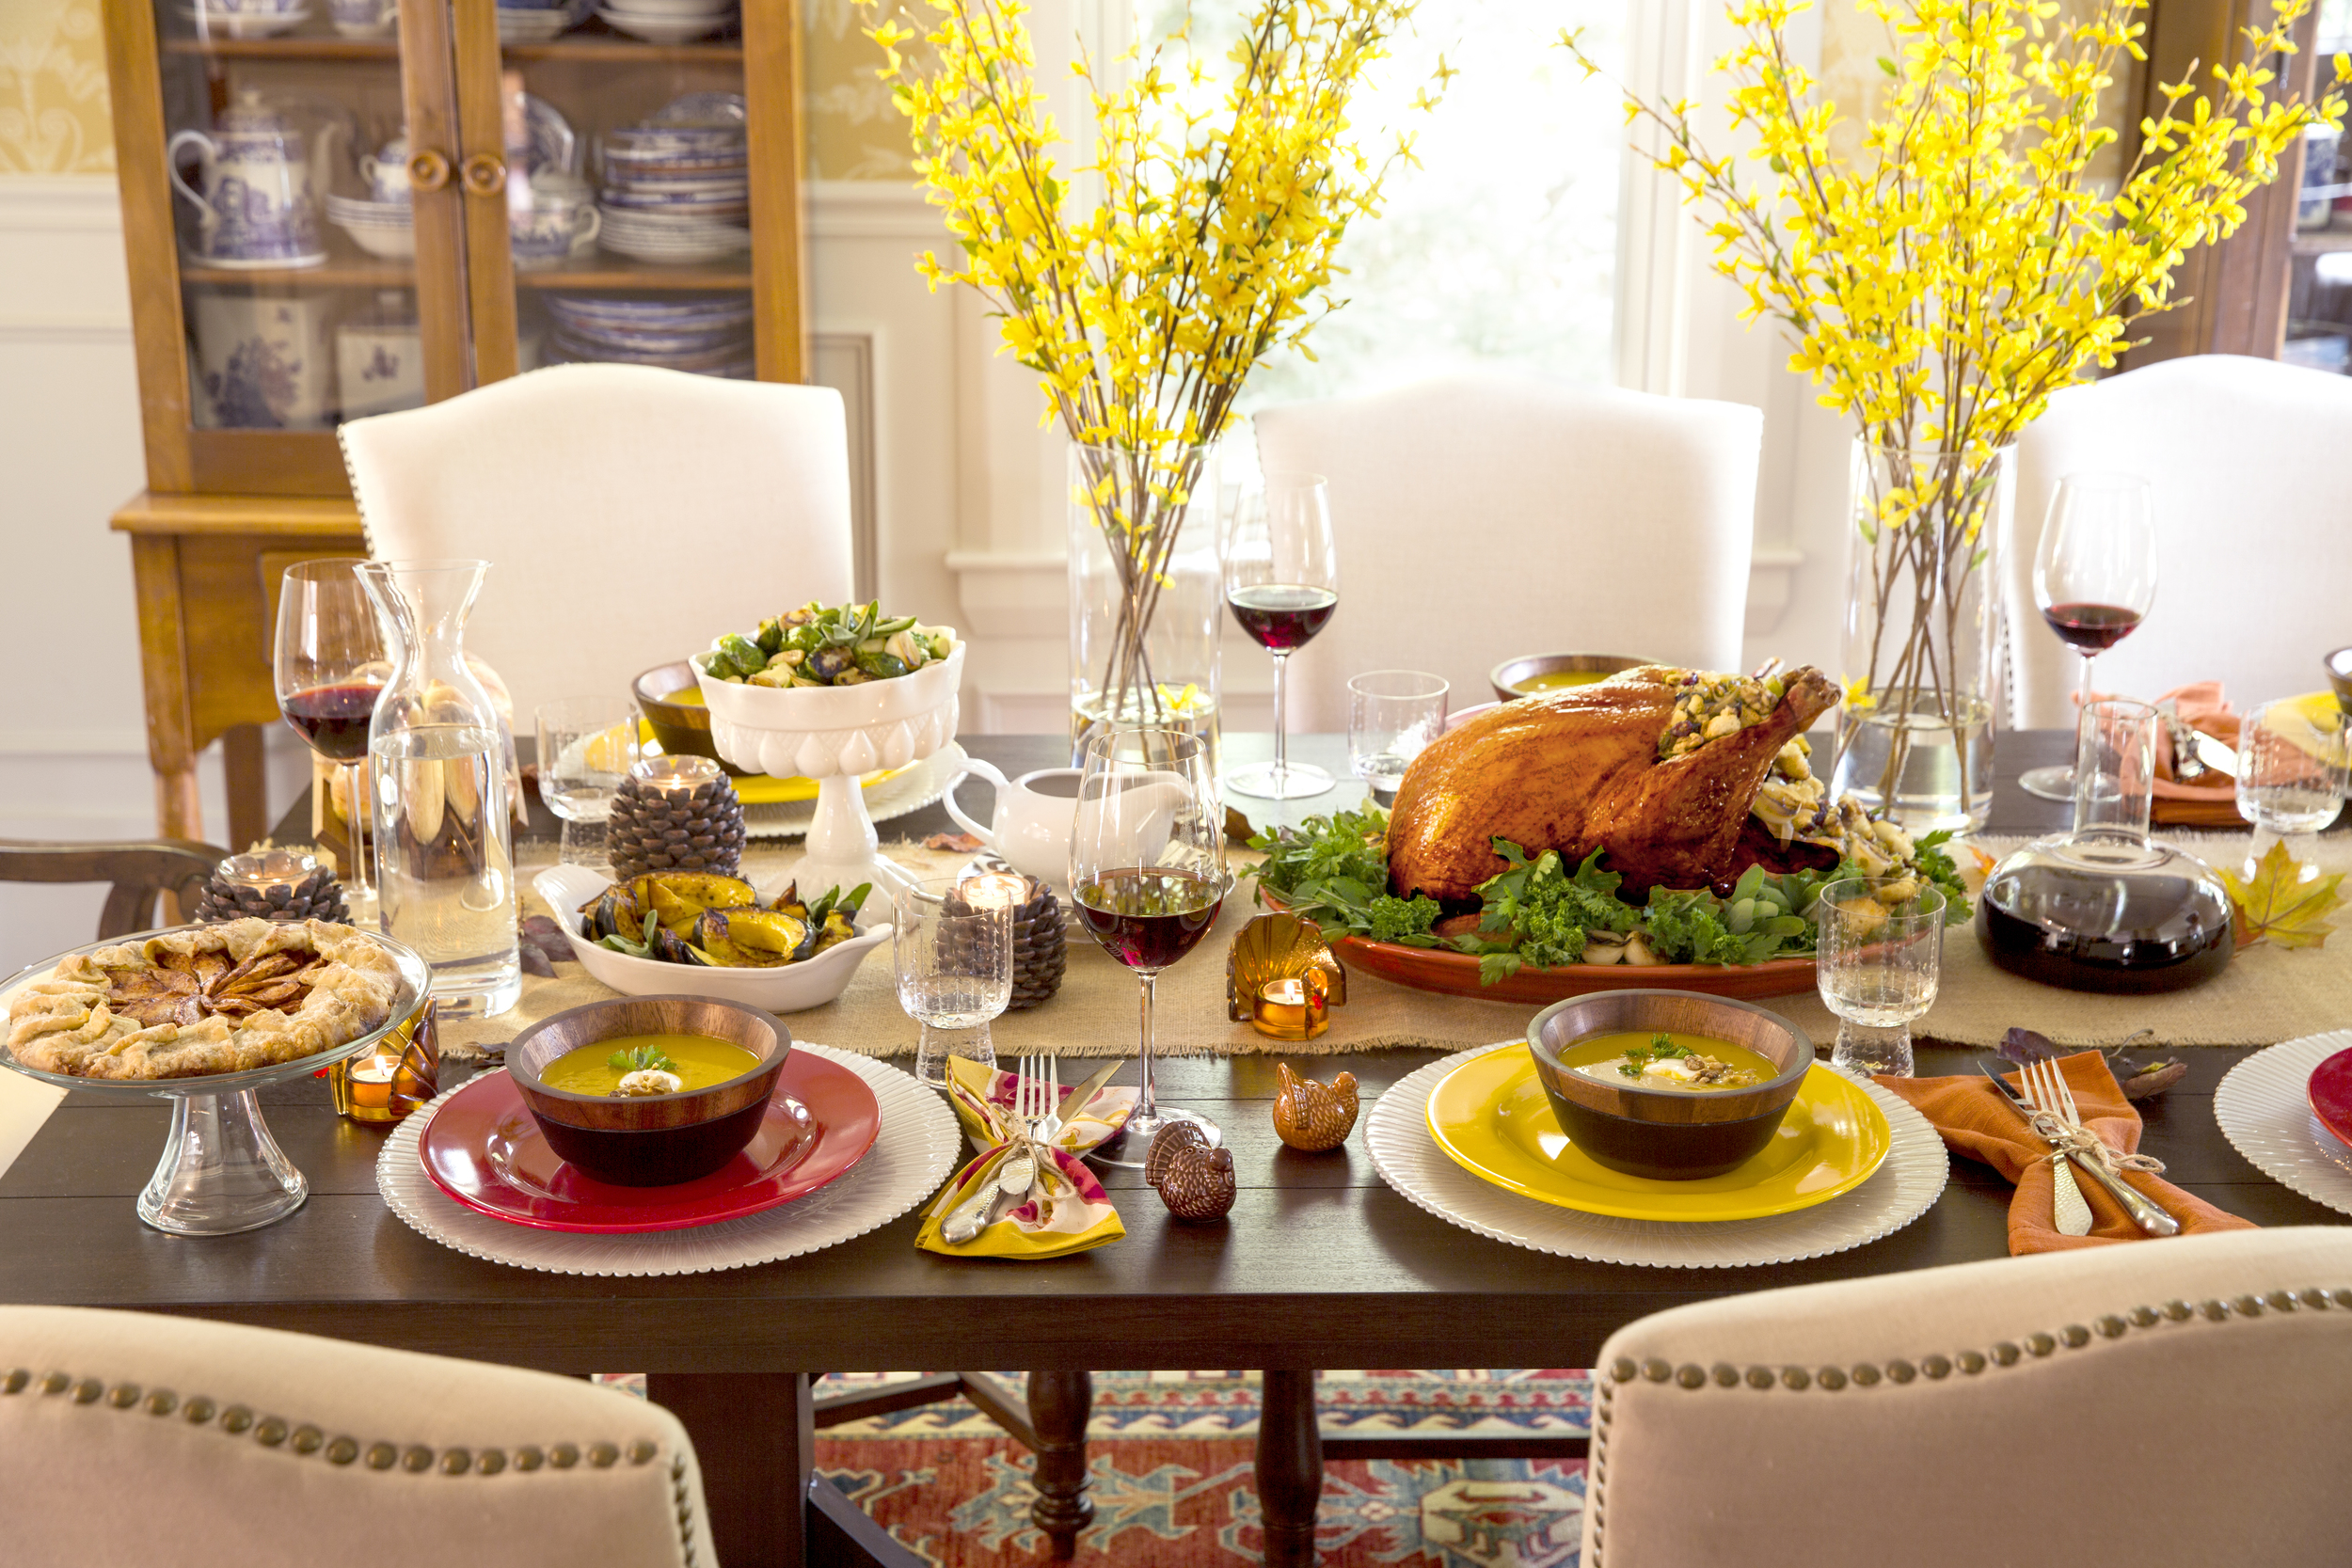 thanksgiving_table_decorating_ideas__tips_for_decorating_and_setting_your_thanksgiving_table___catie.jpg